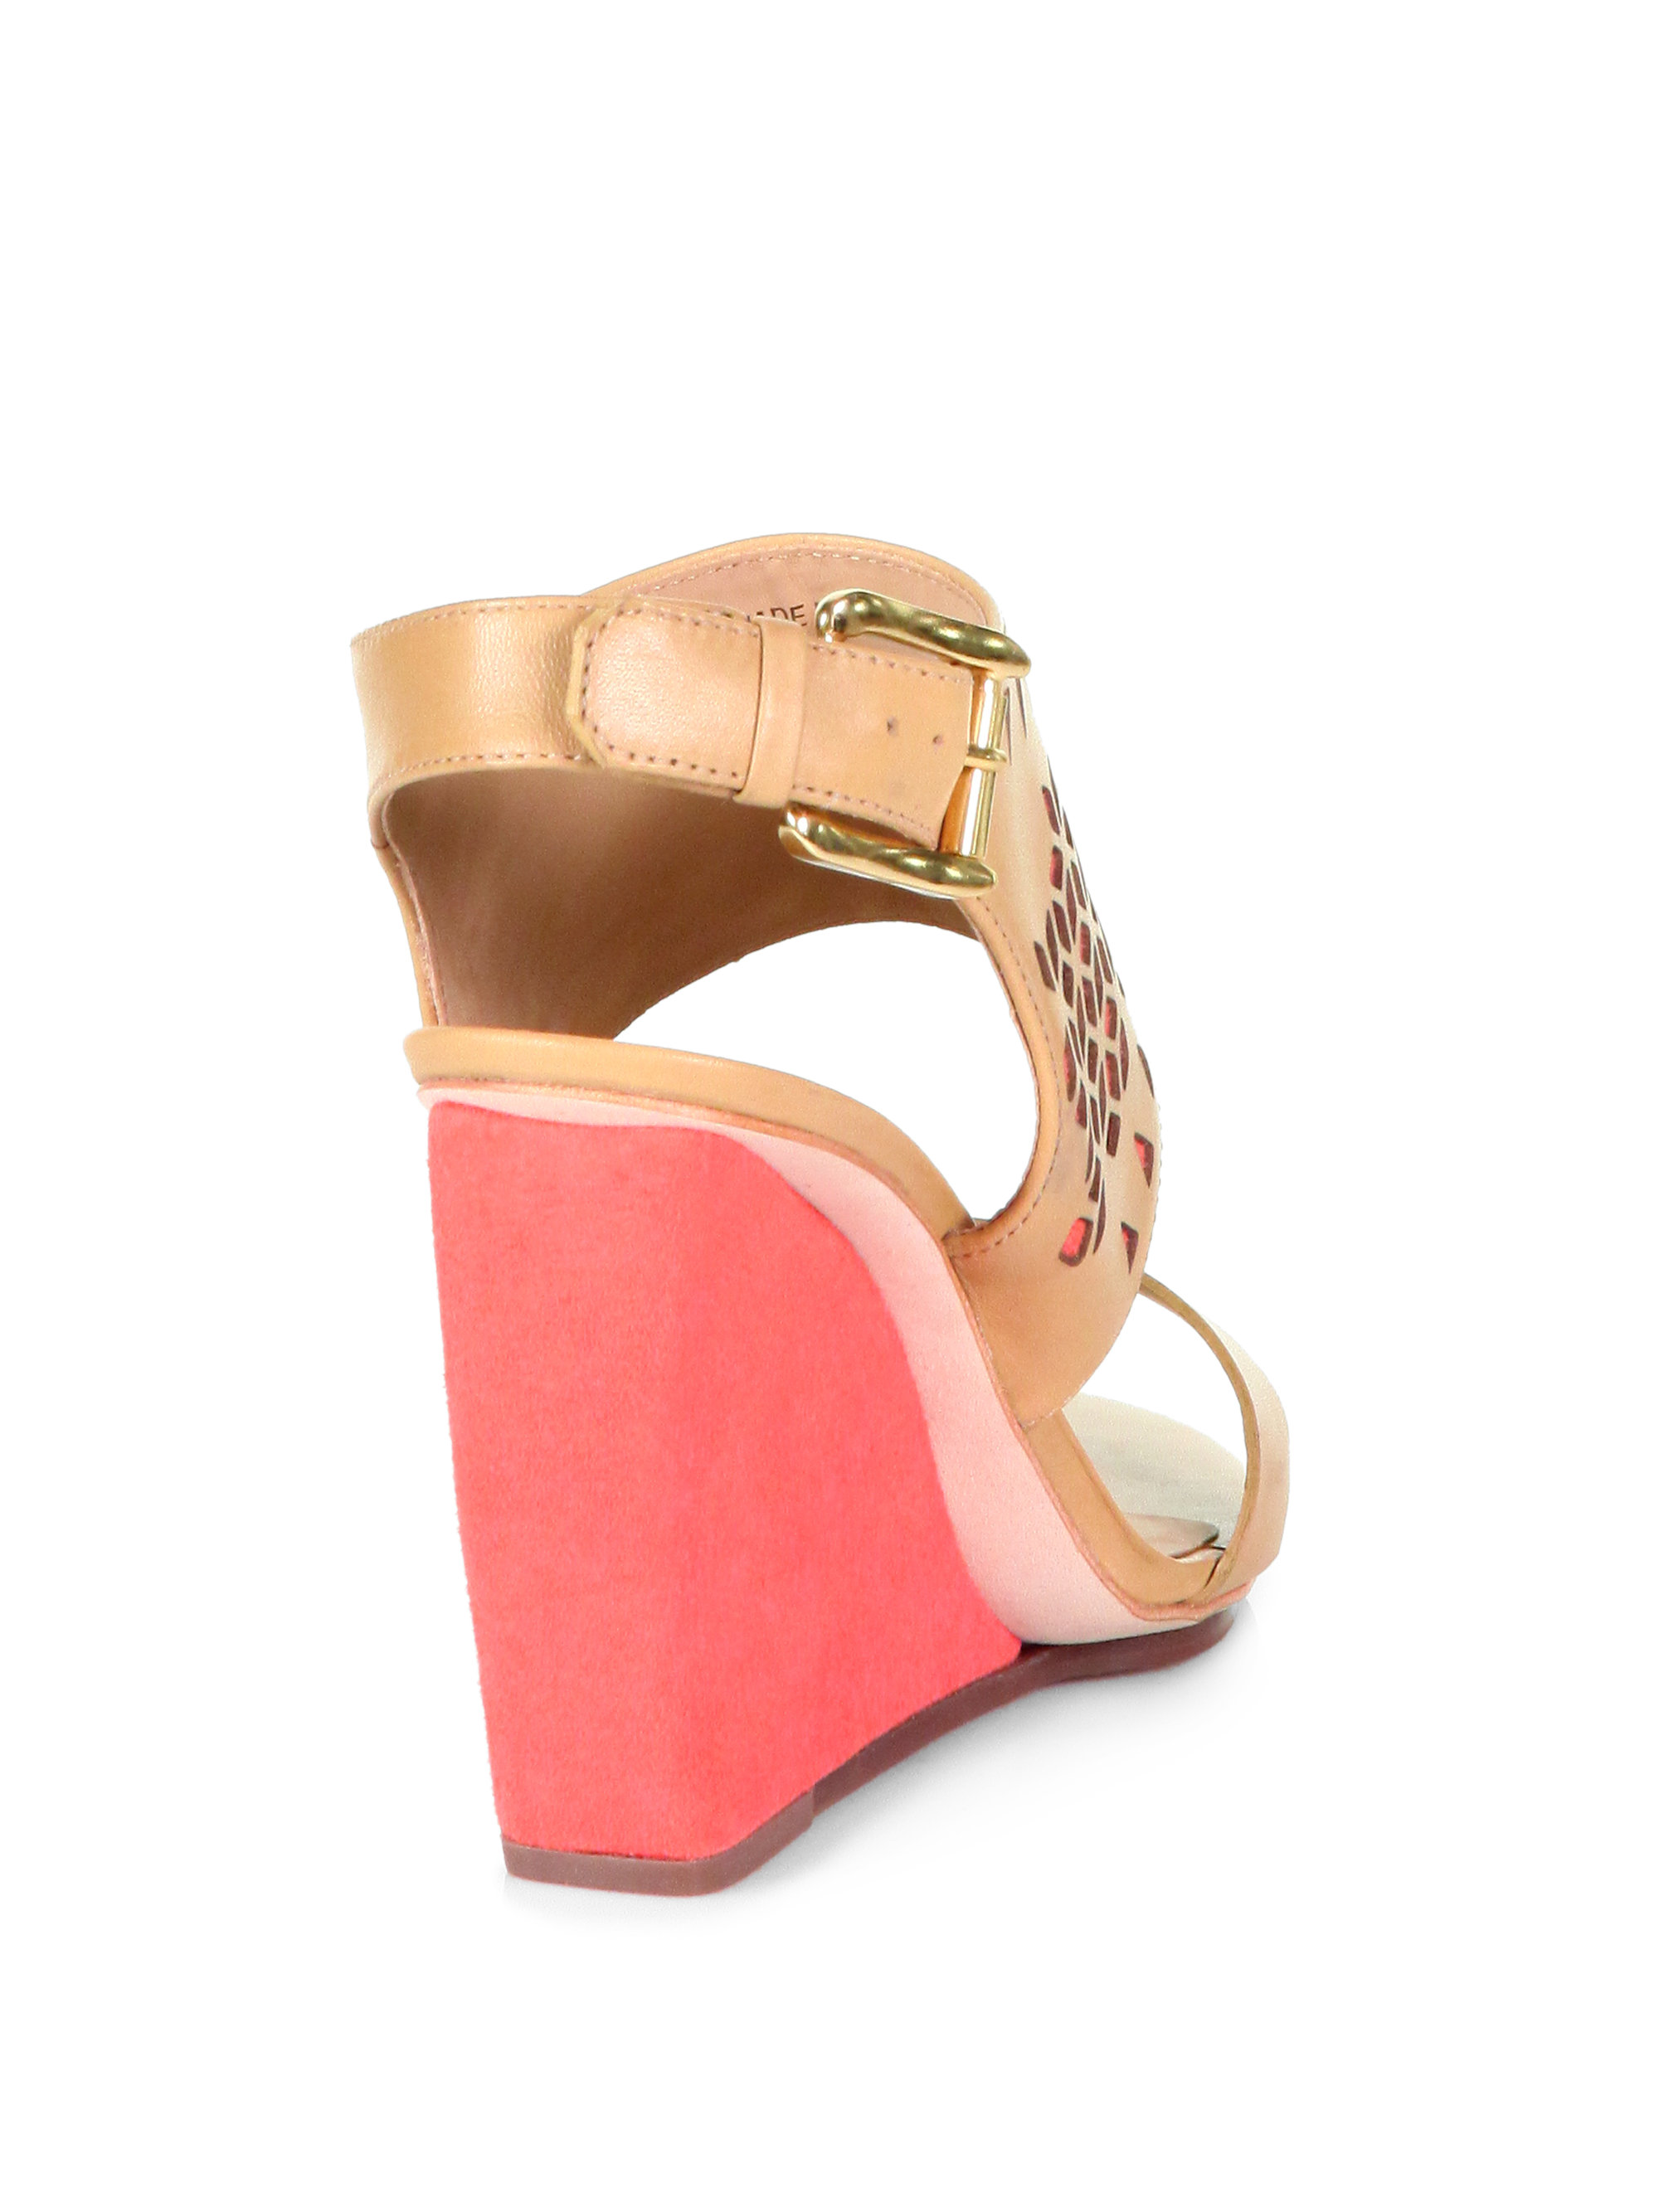 Rebecca Minkoff Leather Laser Cut Wedges cheap nicekicks countdown package cheap price purchase sale online sale websites with credit card cheap price hGlJkwWzh0